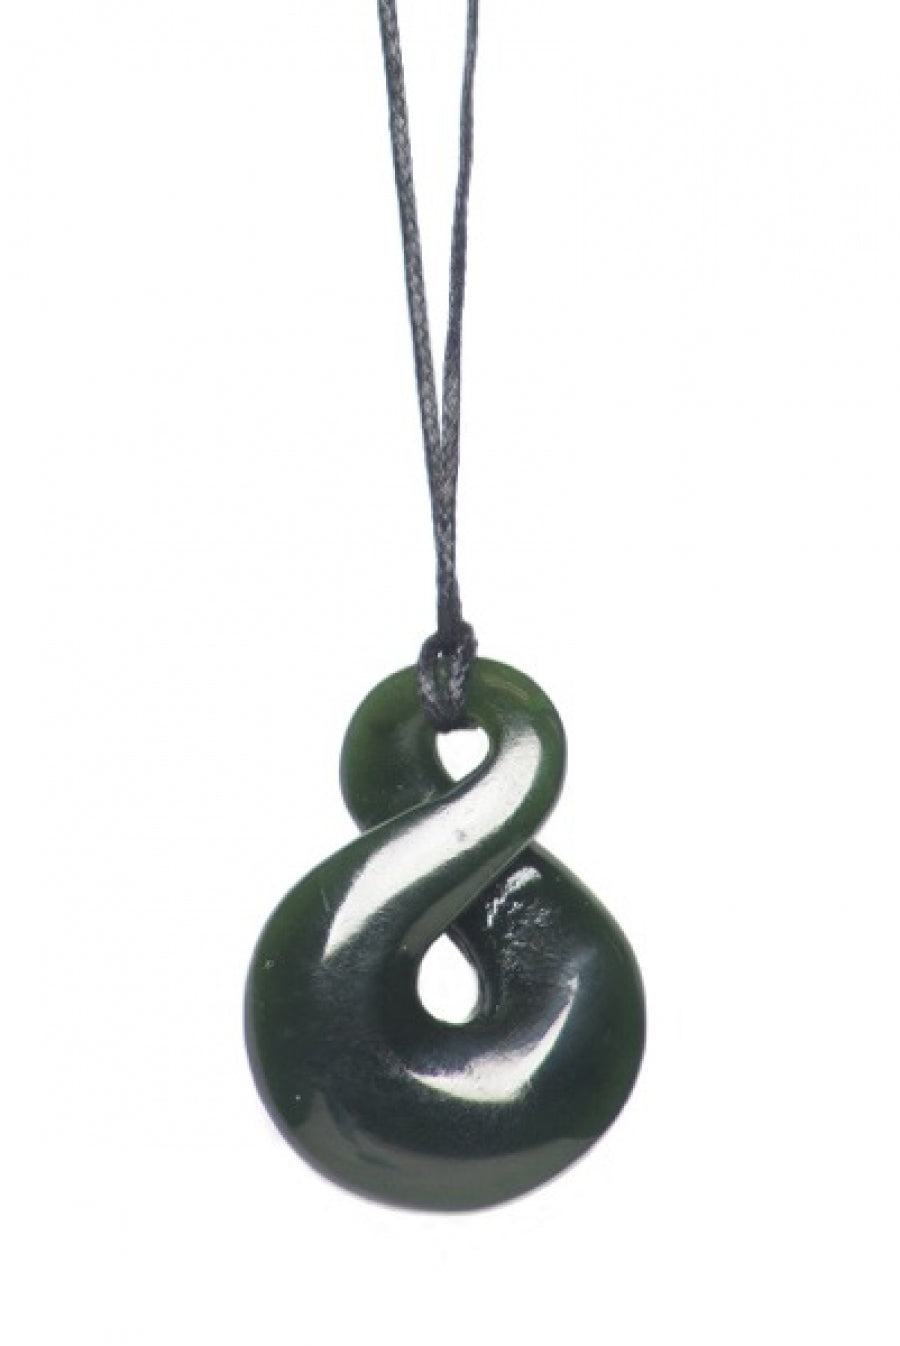 Ngai Tahu Pounamu - Single Rounded Twist